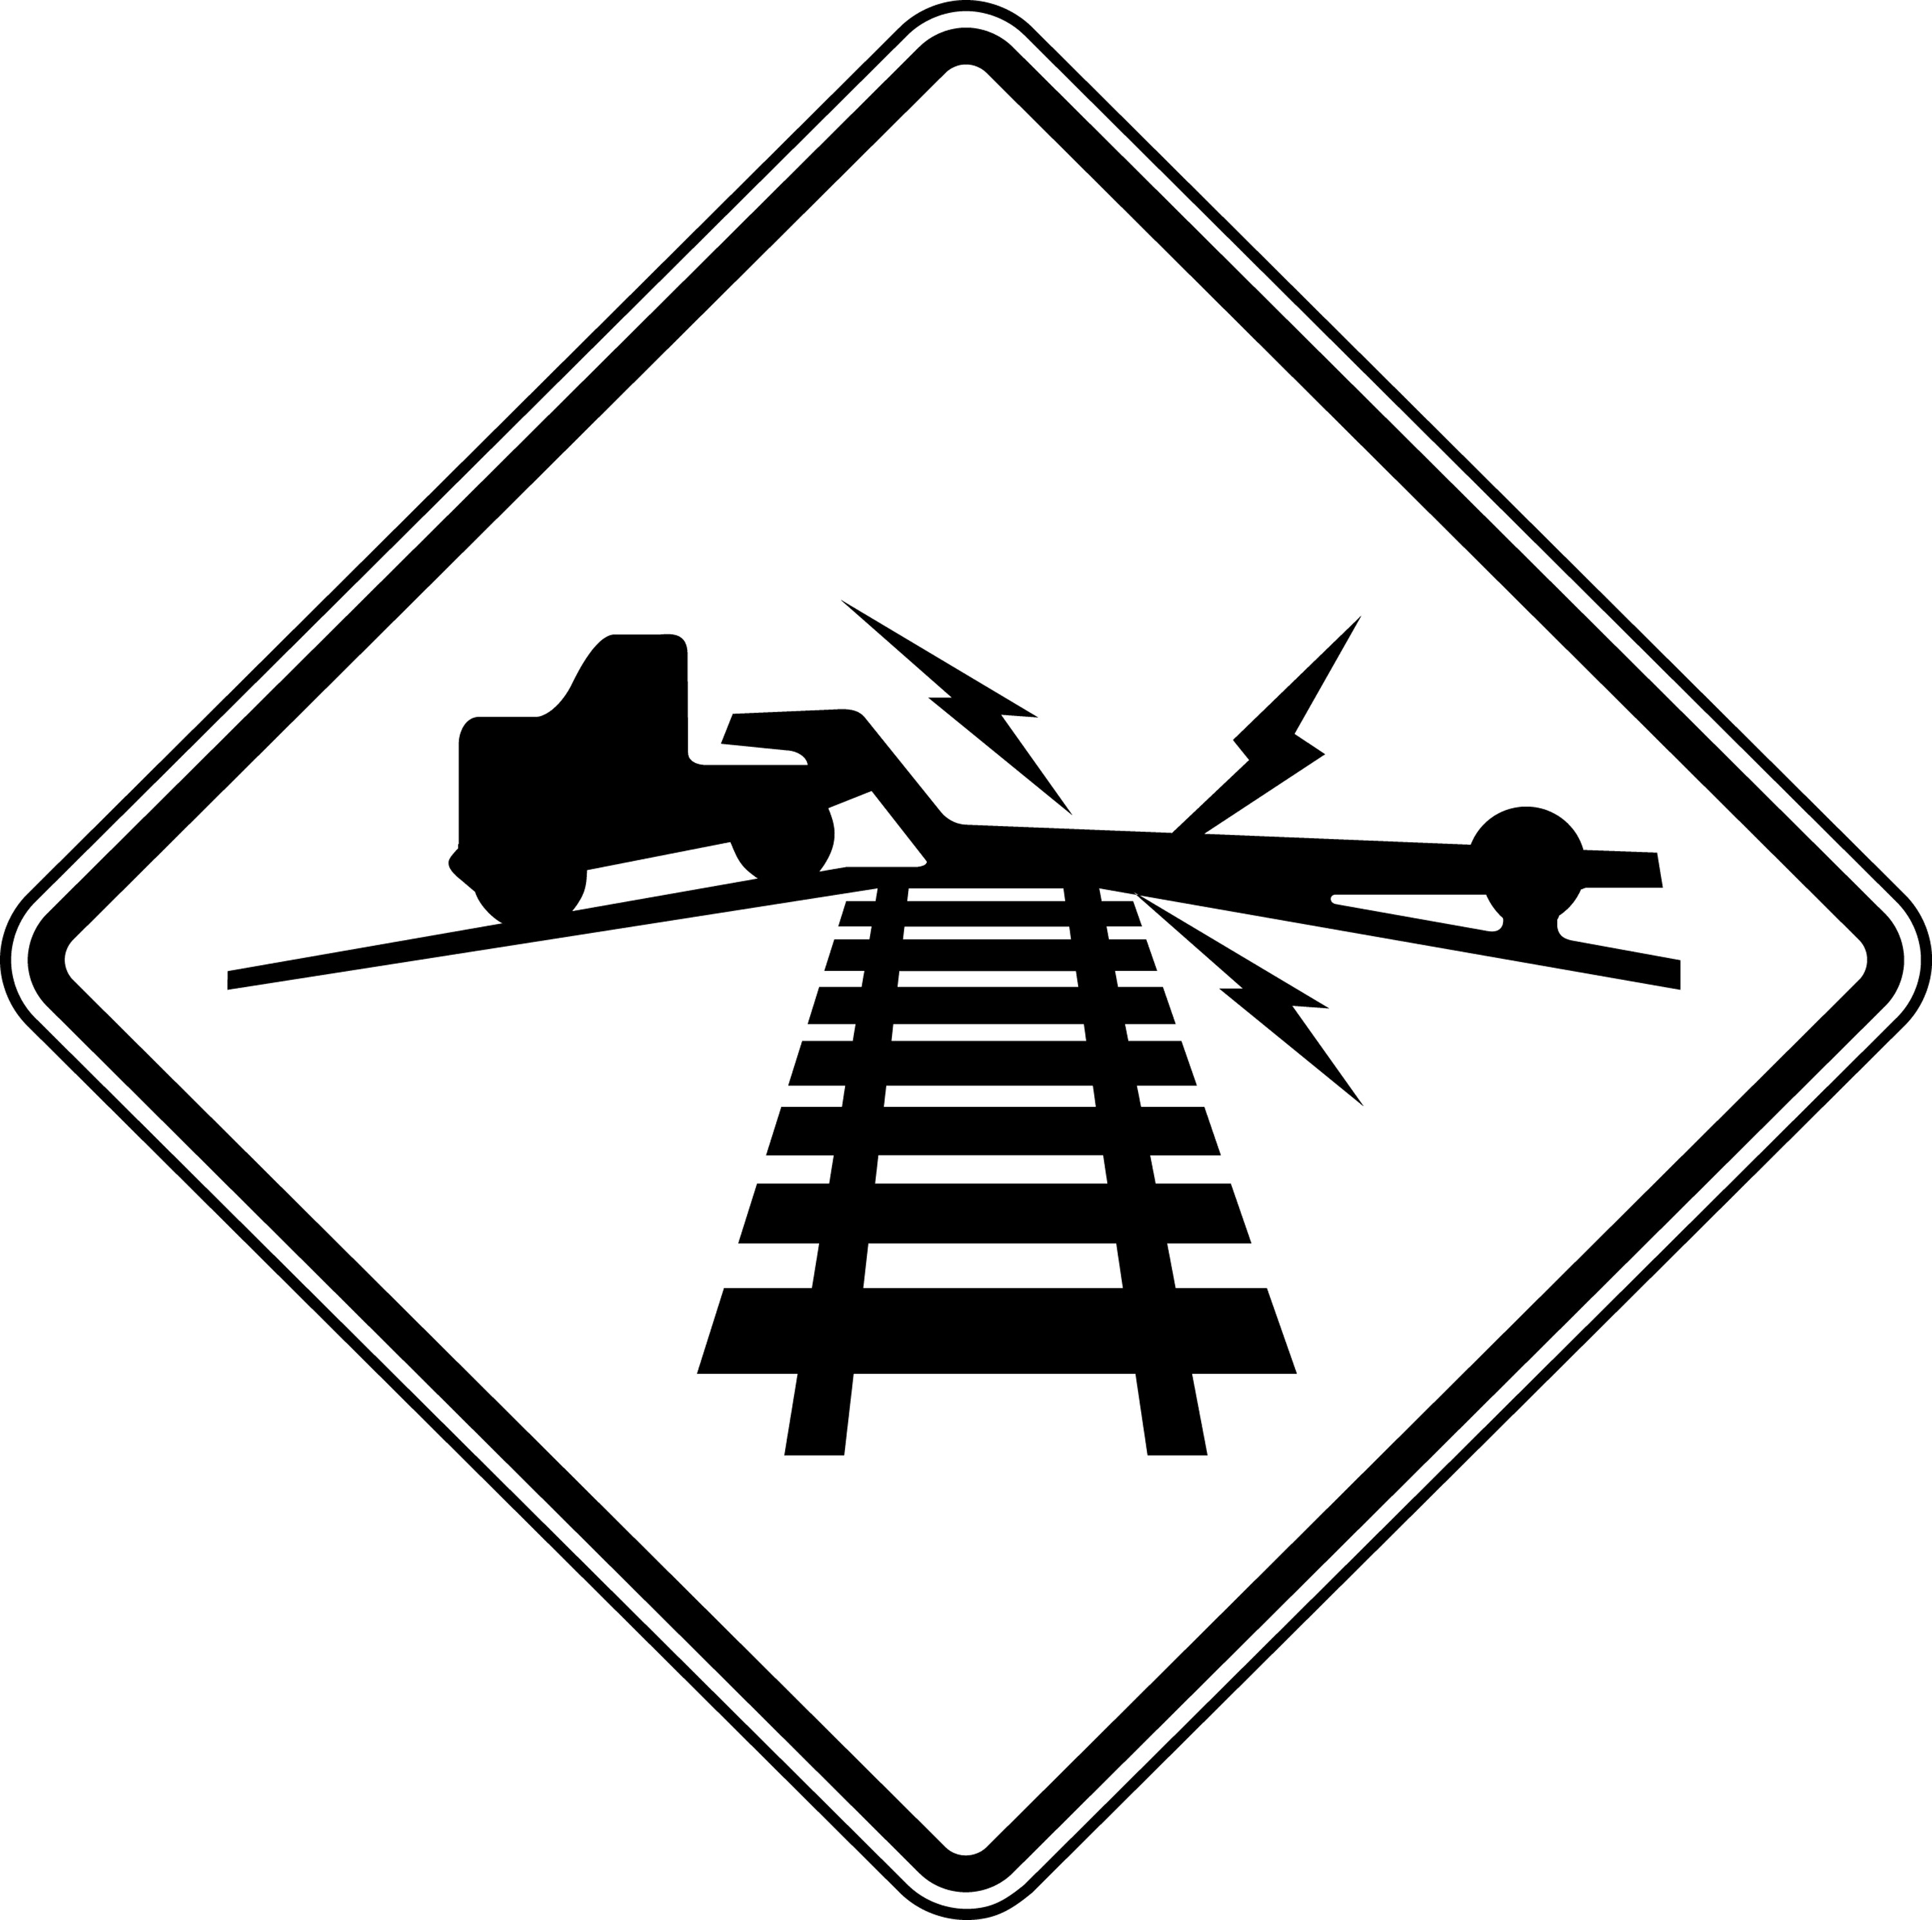 Road Crossing Clipart Black And White Low Ground Clearance Highway Rail Grade Crossing Black